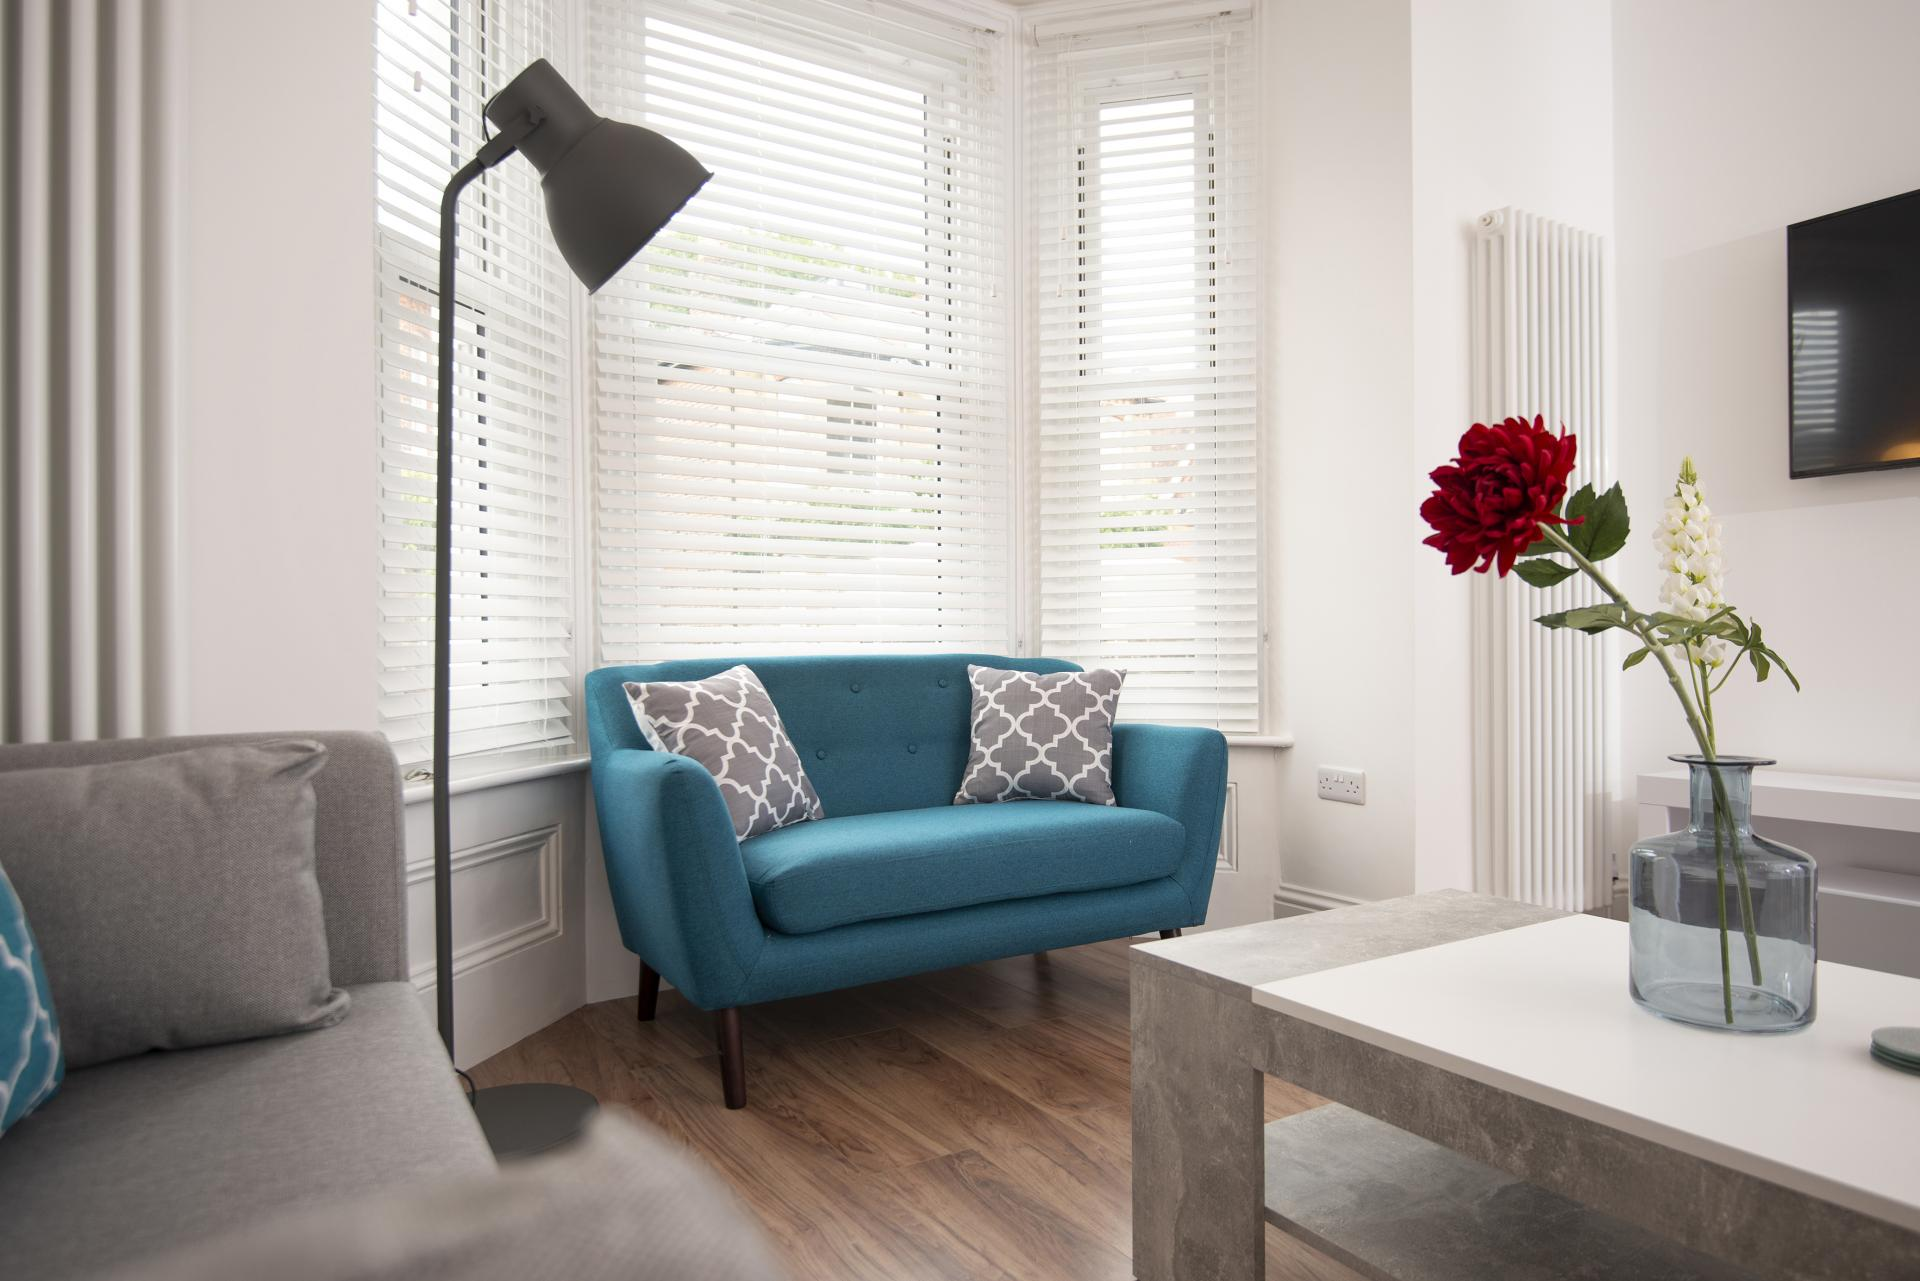 Living Room at Hereford House Apartments, Southsea, Portsmouth